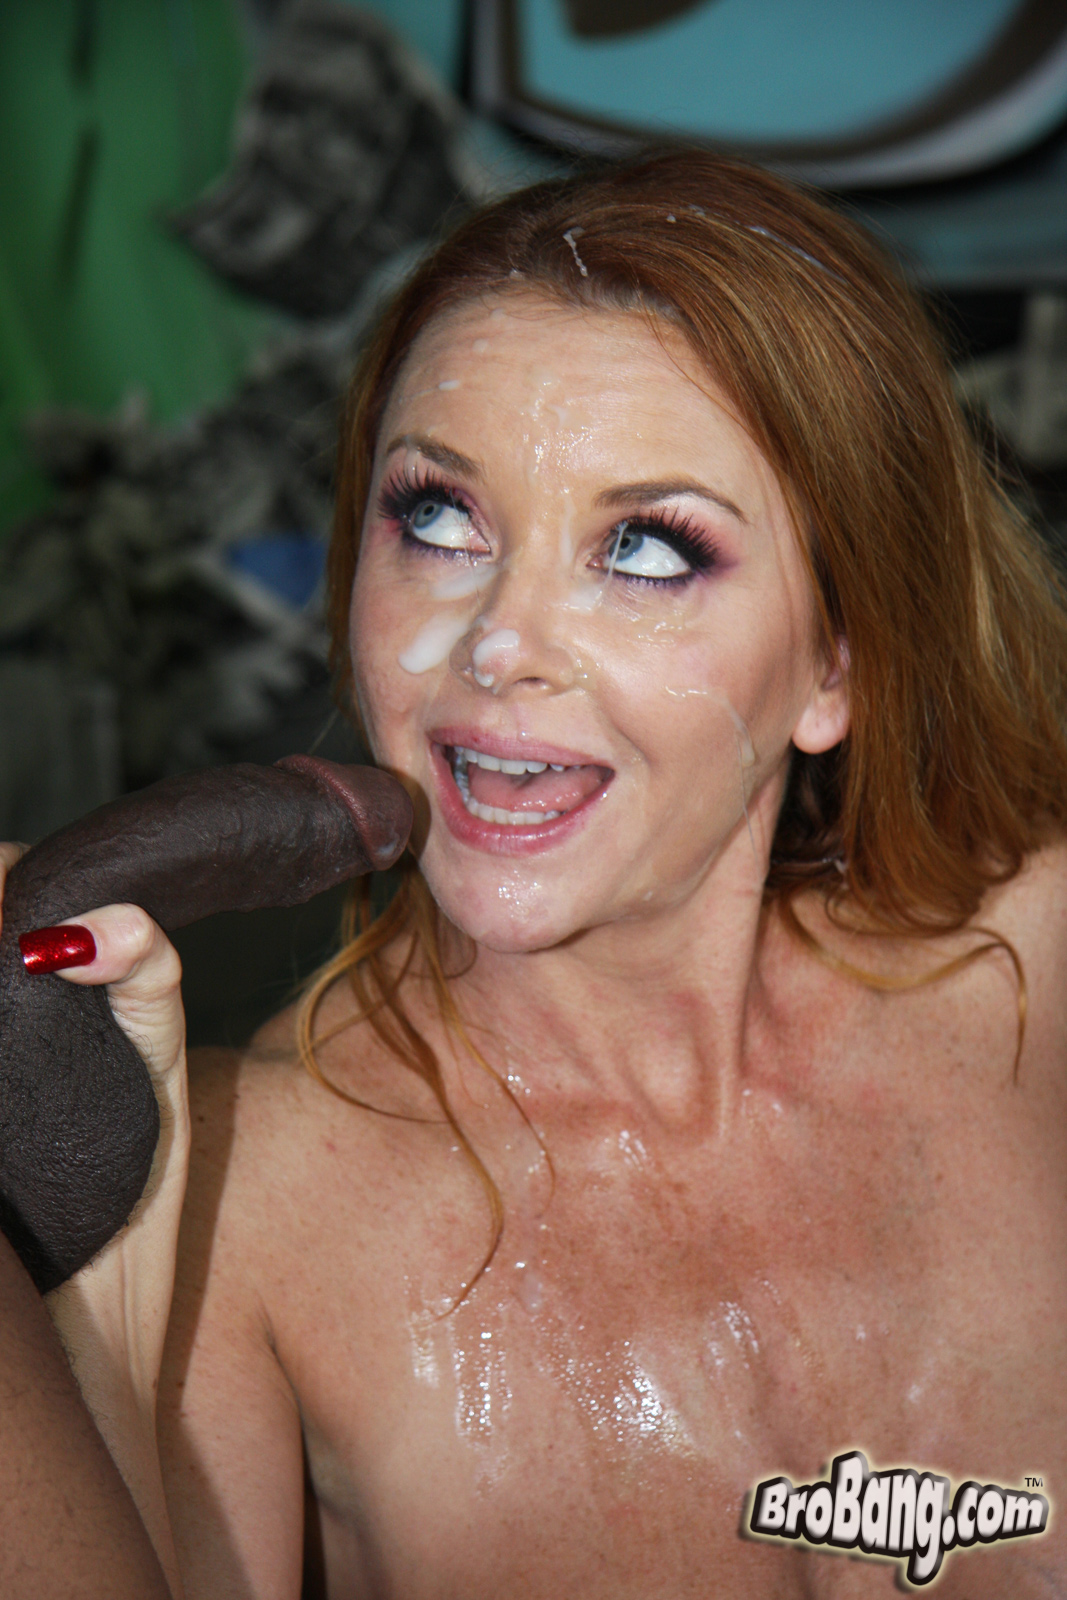 Fuck pictures wife redhead cum she looking she